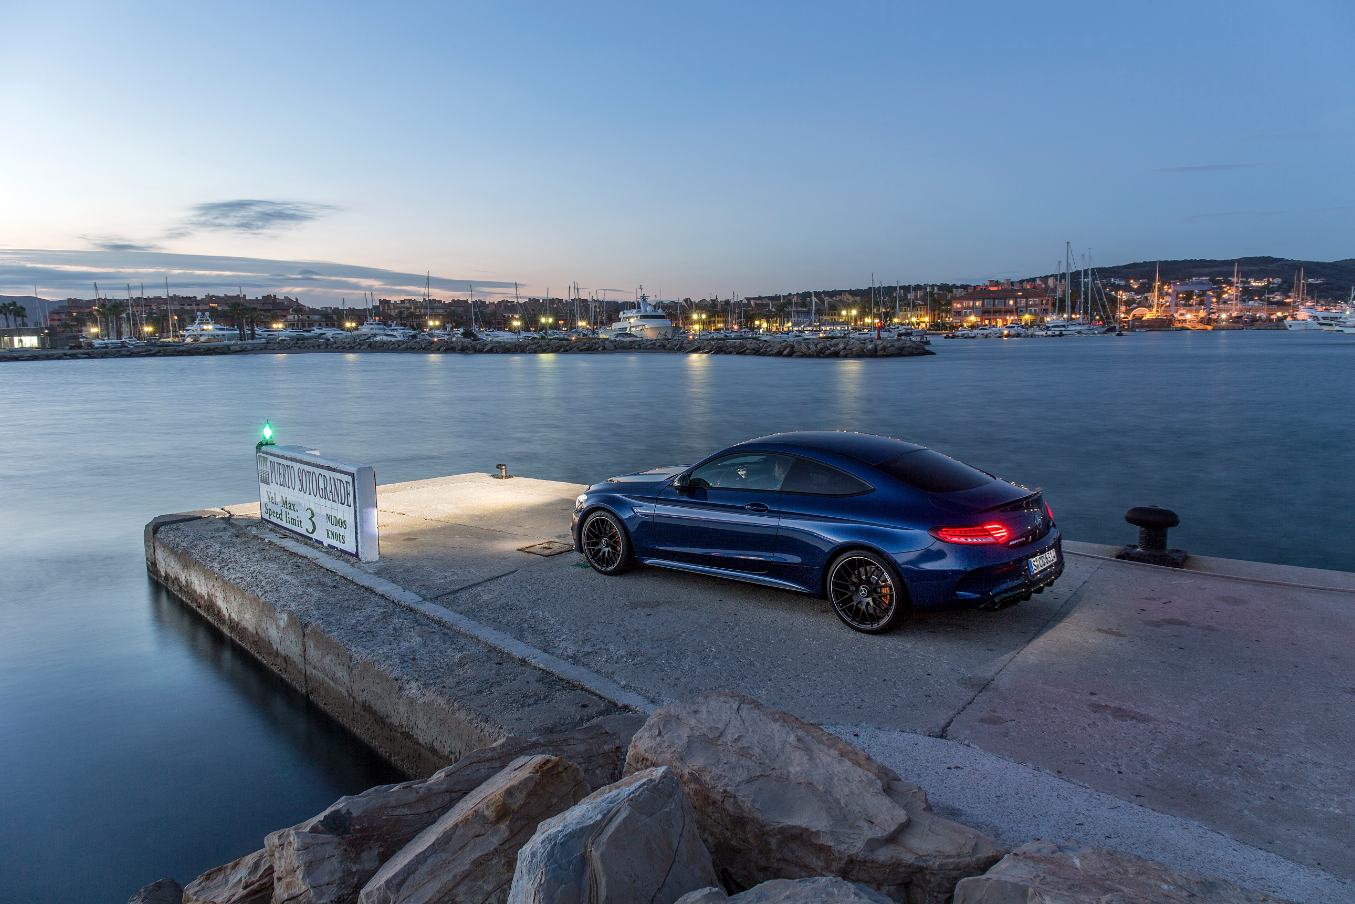 The Mercedes-AMG C63S Coupe